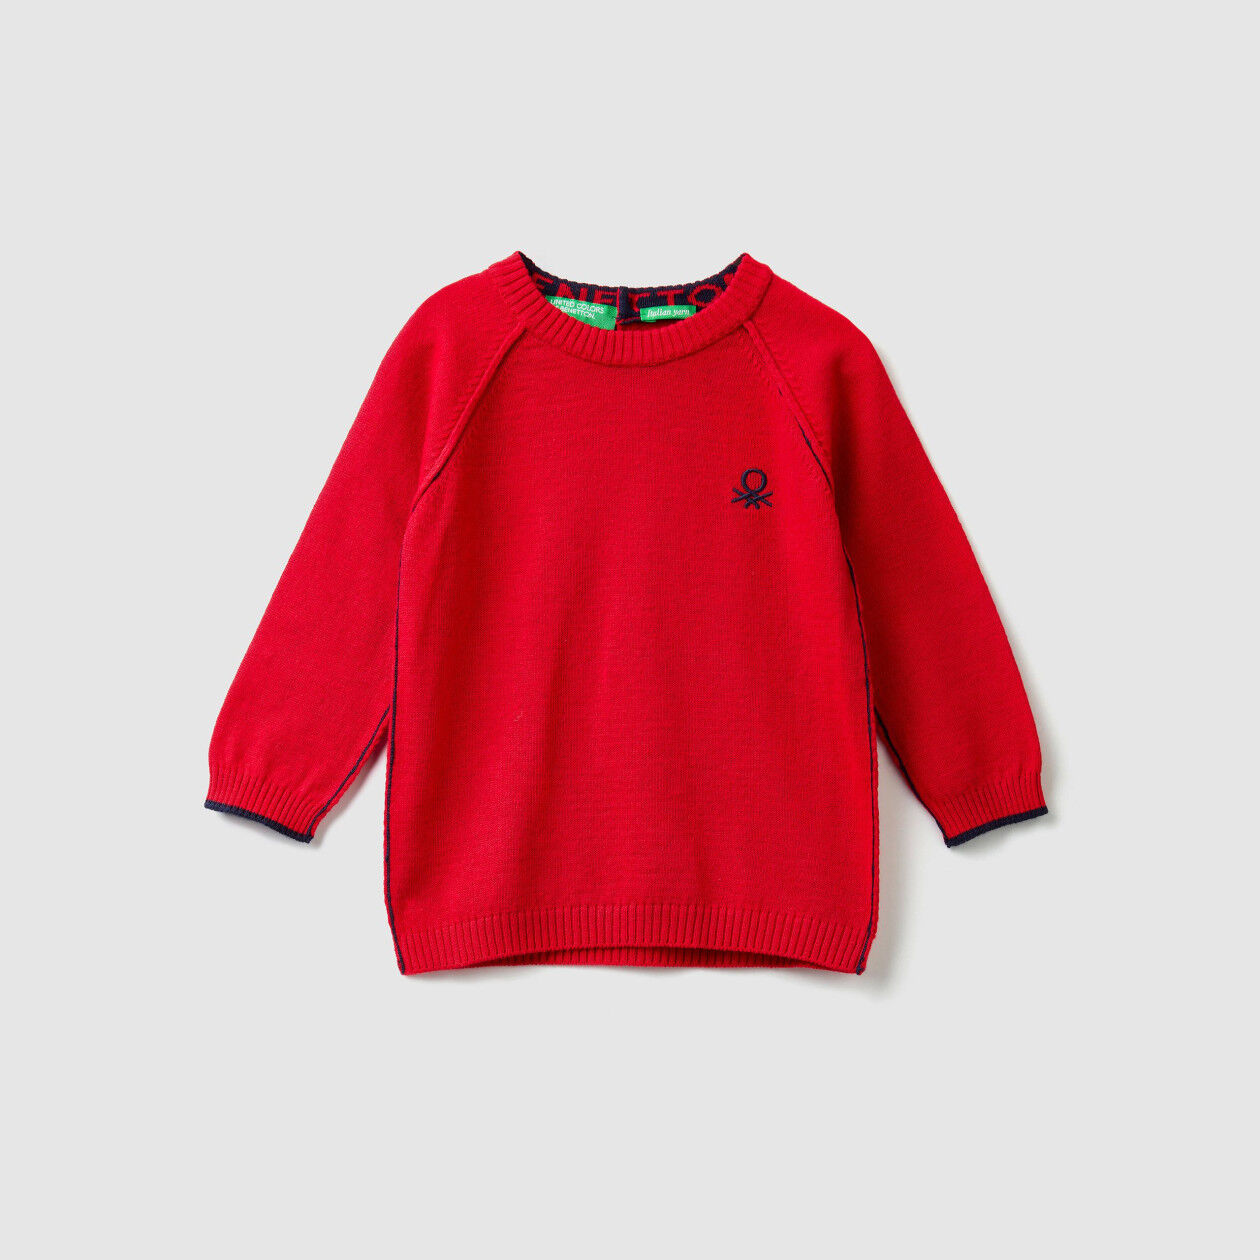 Cotton and wool crew neck sweater